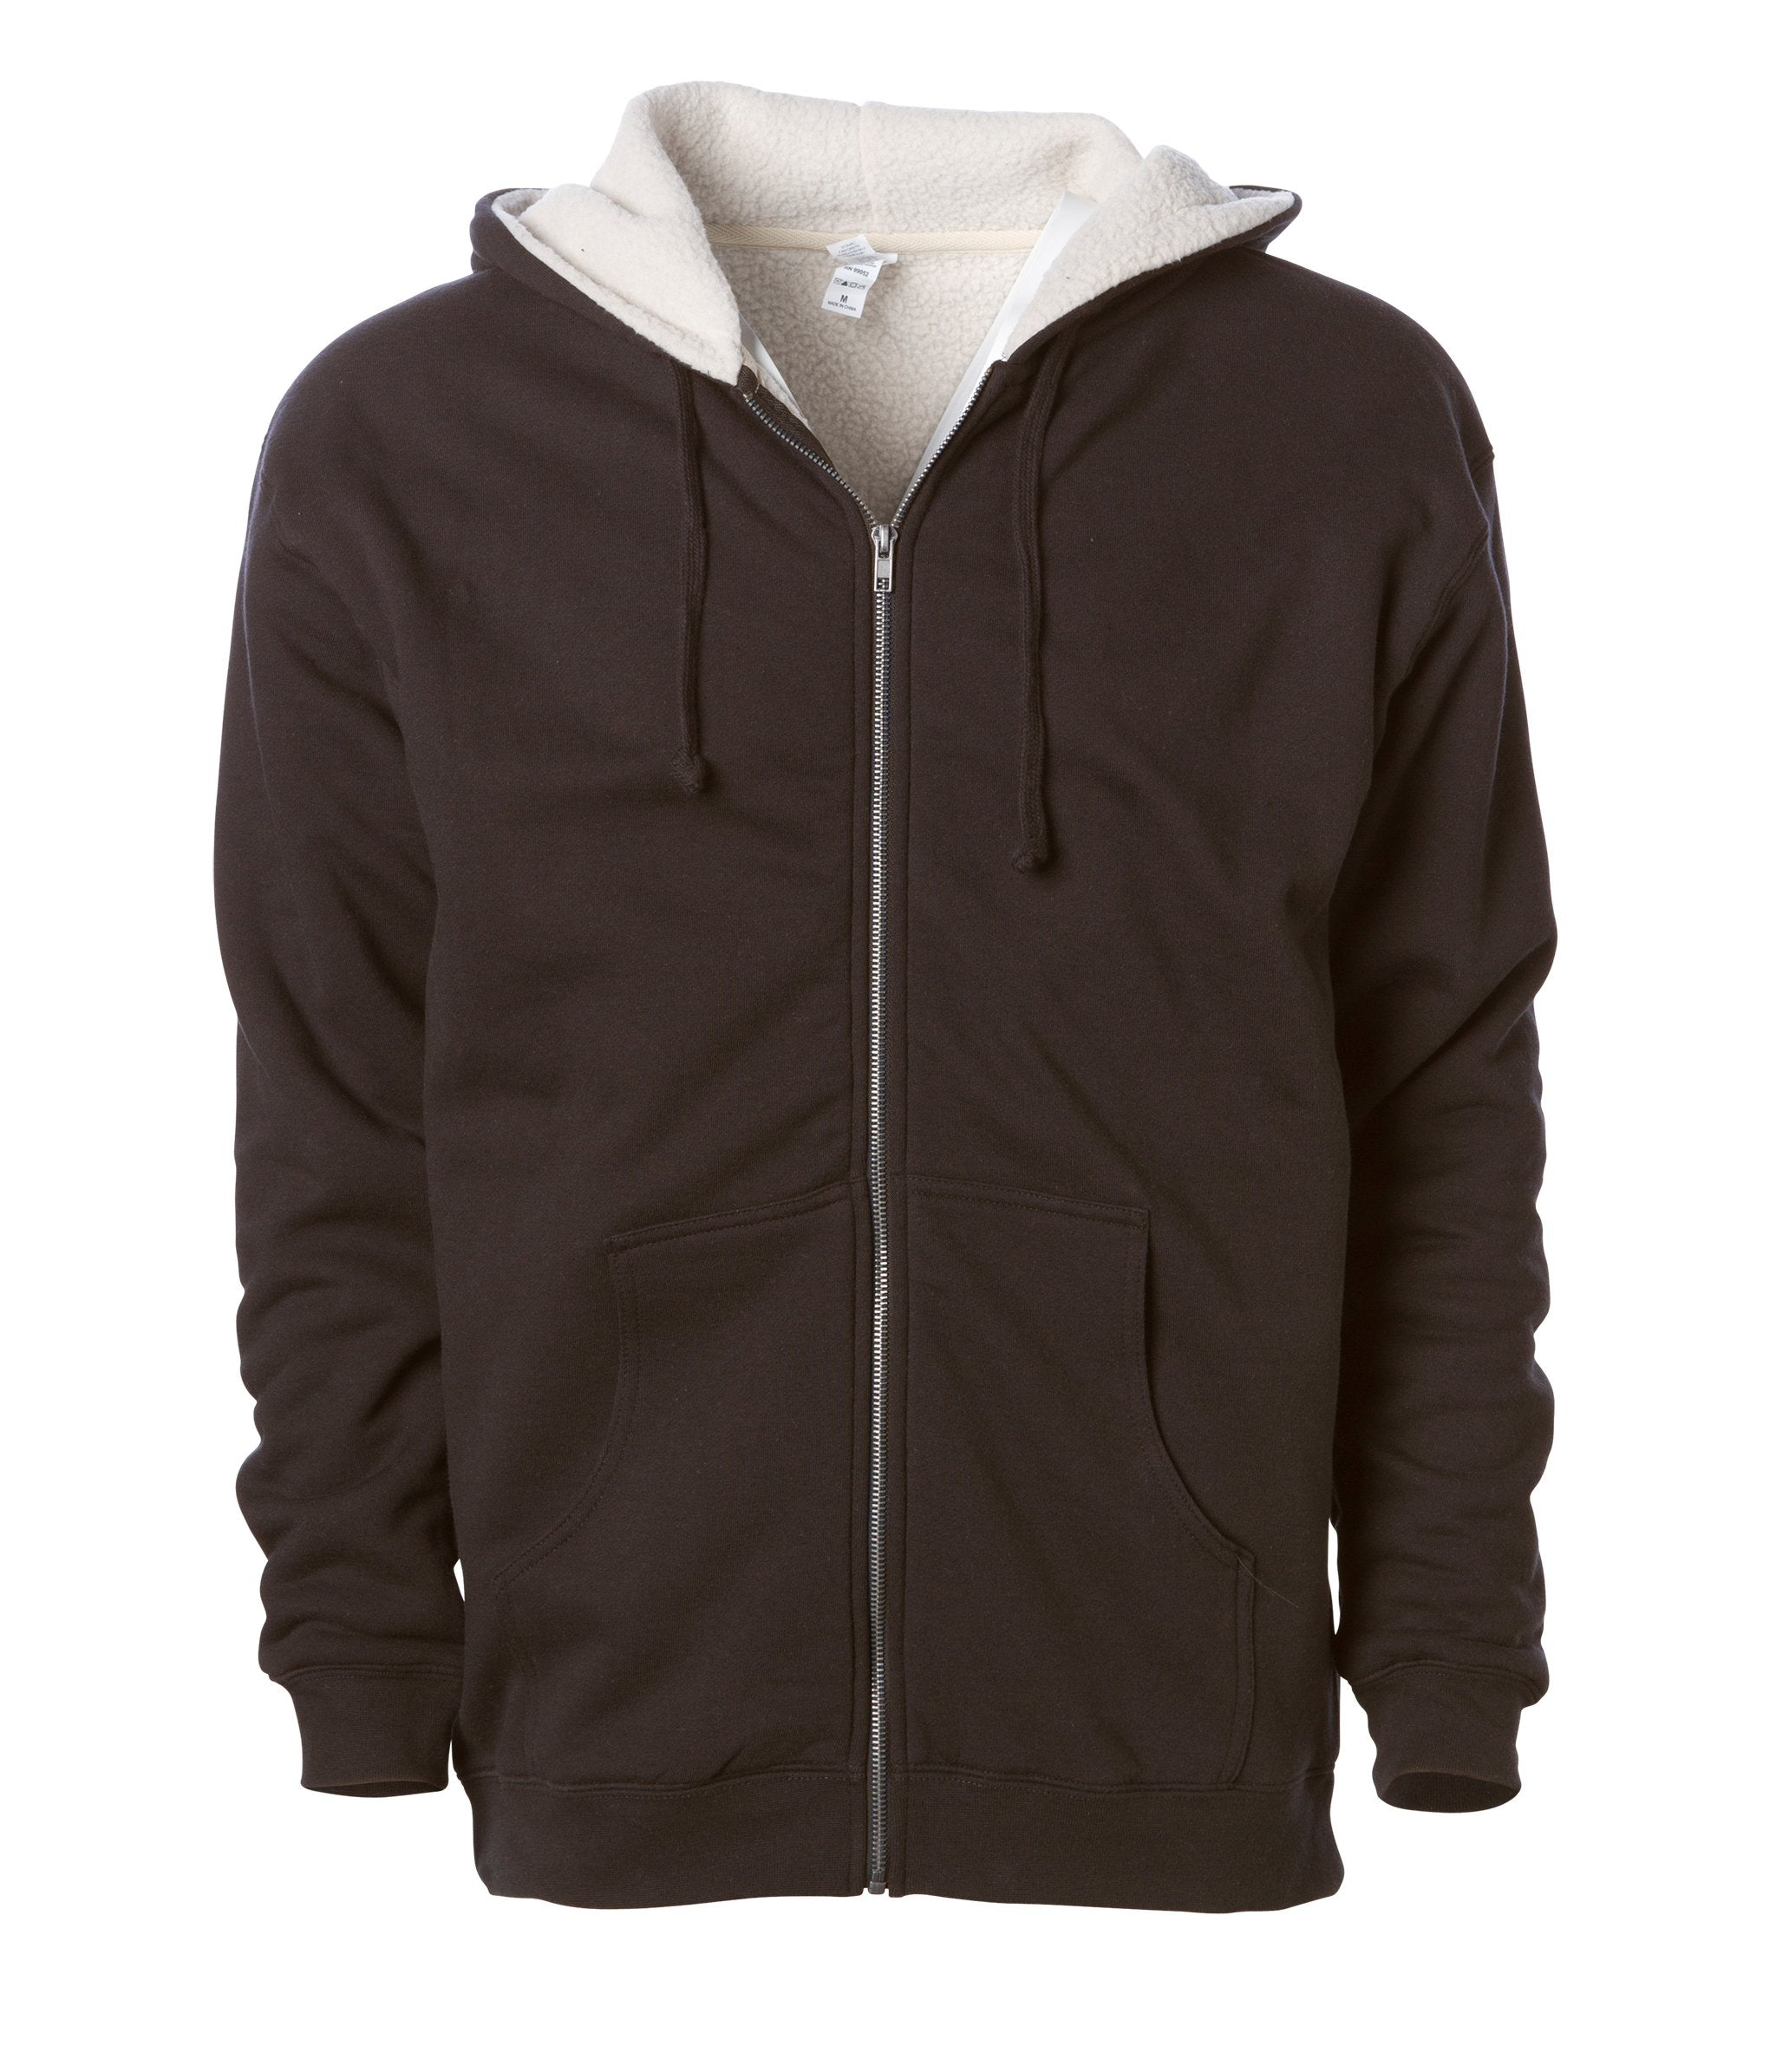 Sherpa Lined Zip Hooded Sweatshirt in Cocoa/Natural